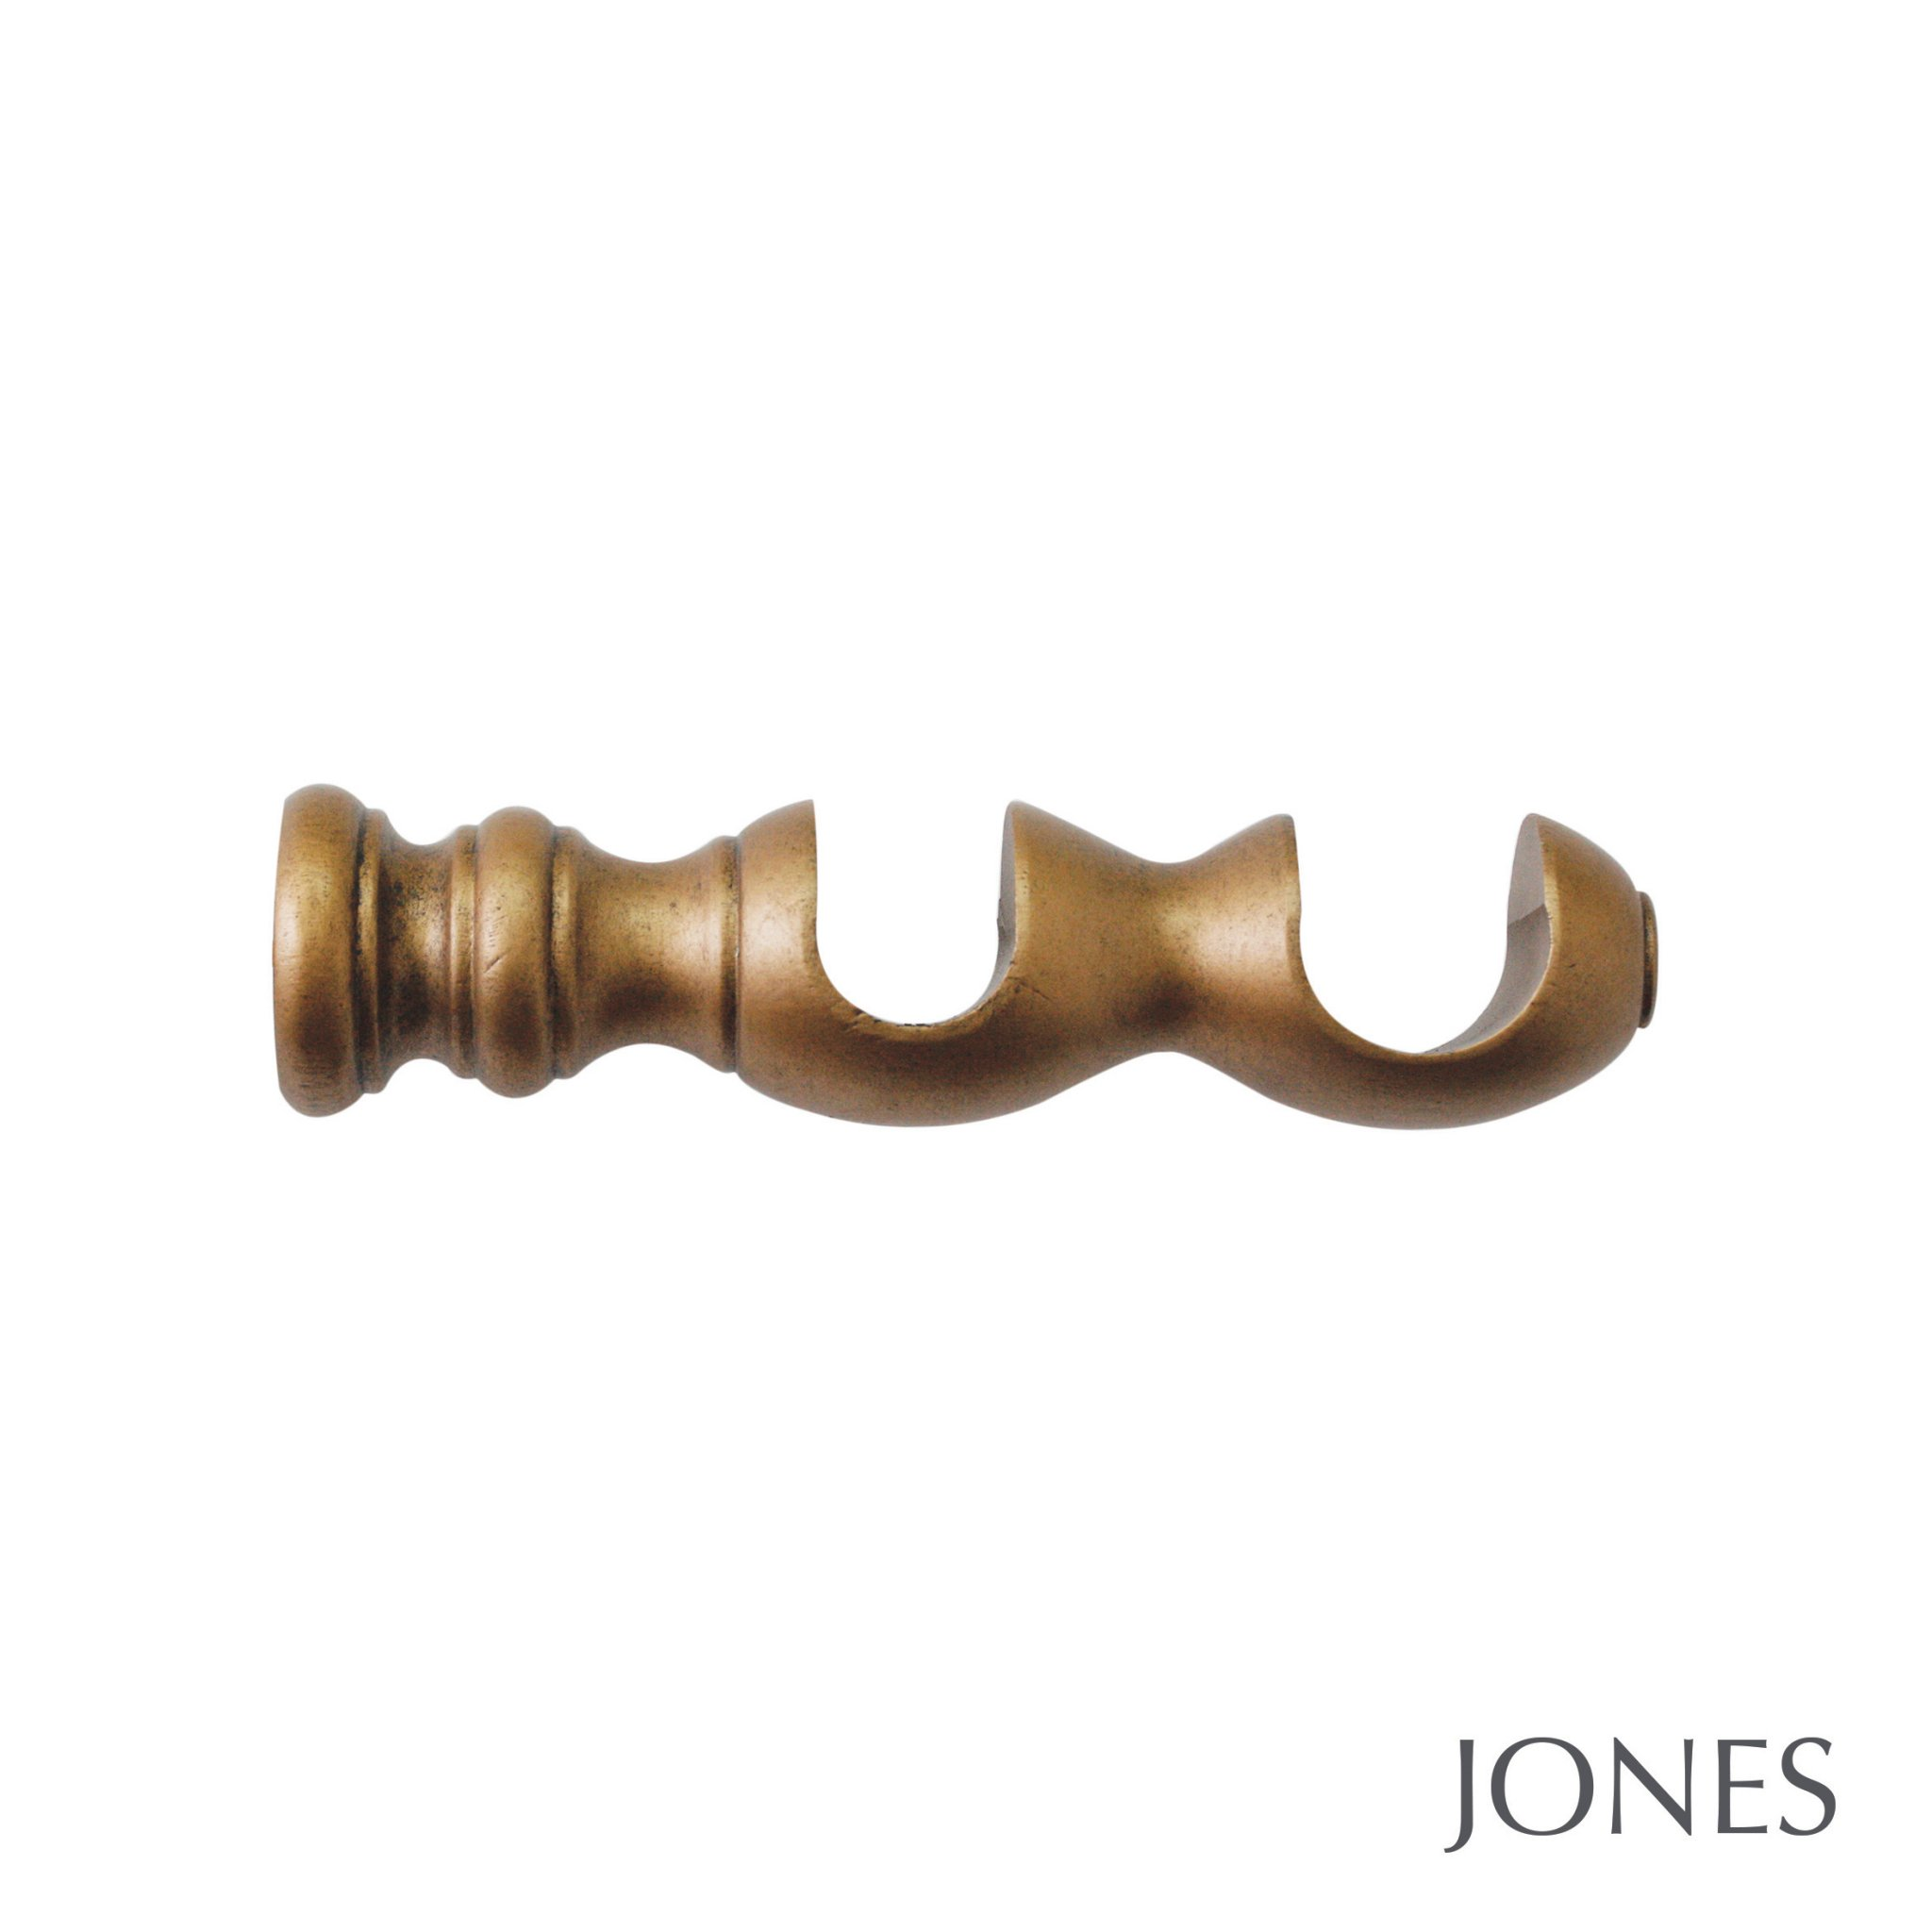 Jones Florentine Handcrafted 50mm Double Brackets